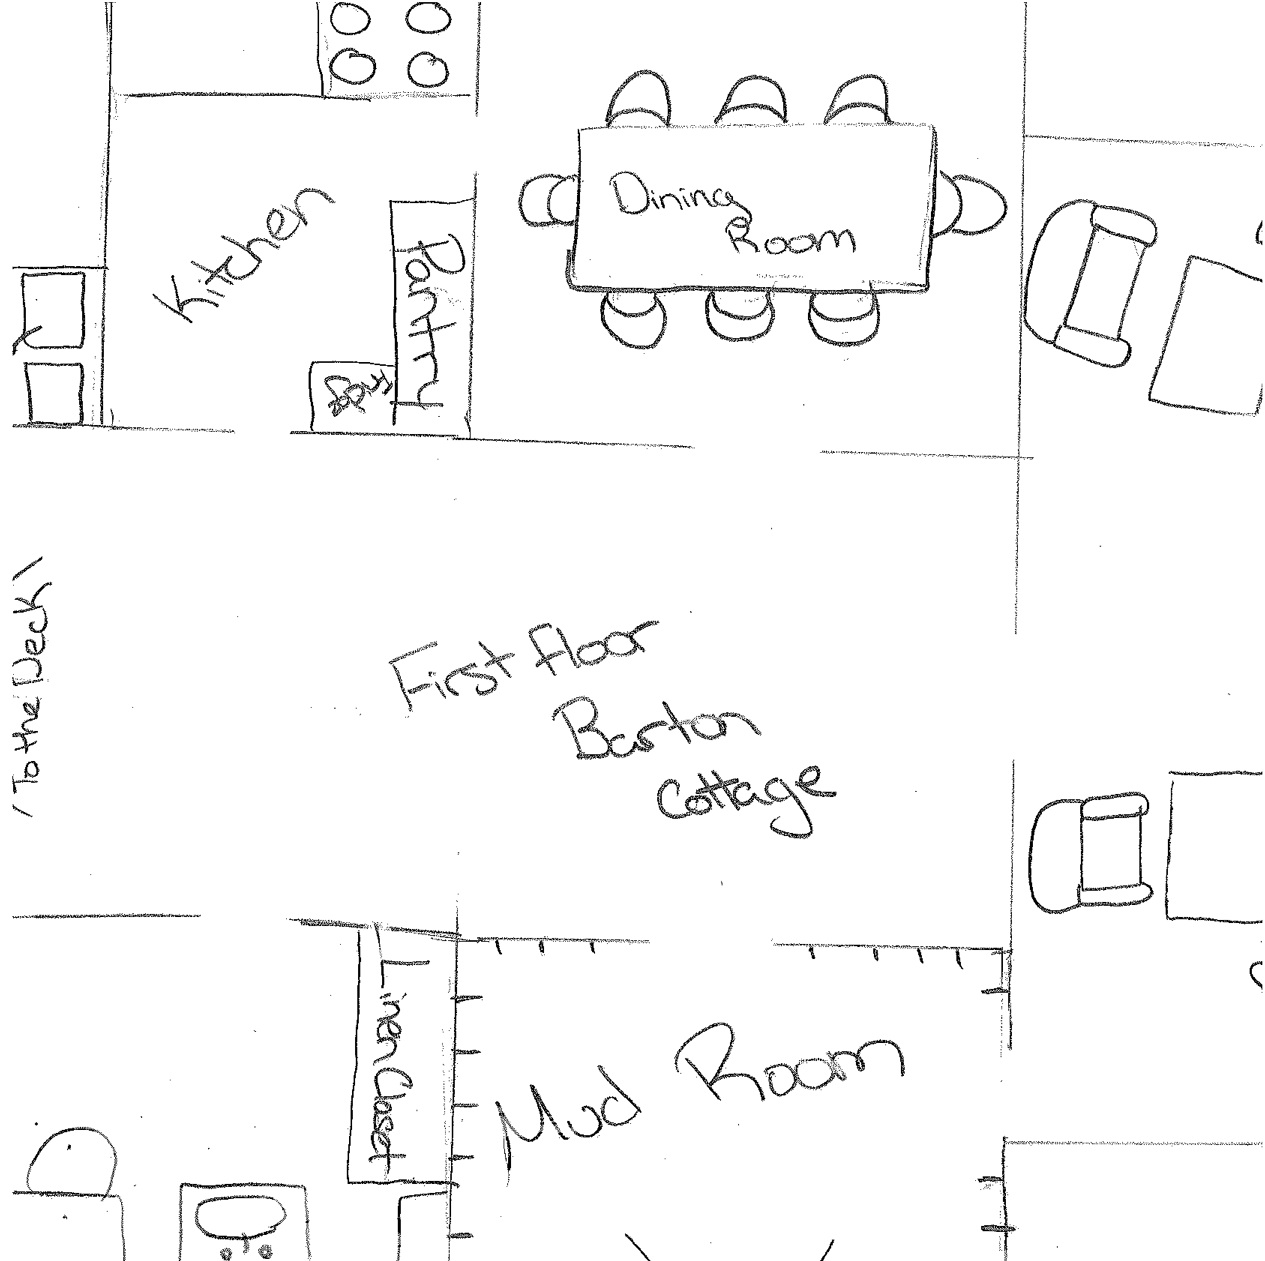 Detailed drawing of floor plan for Sense and Sensibility in High School (2014).